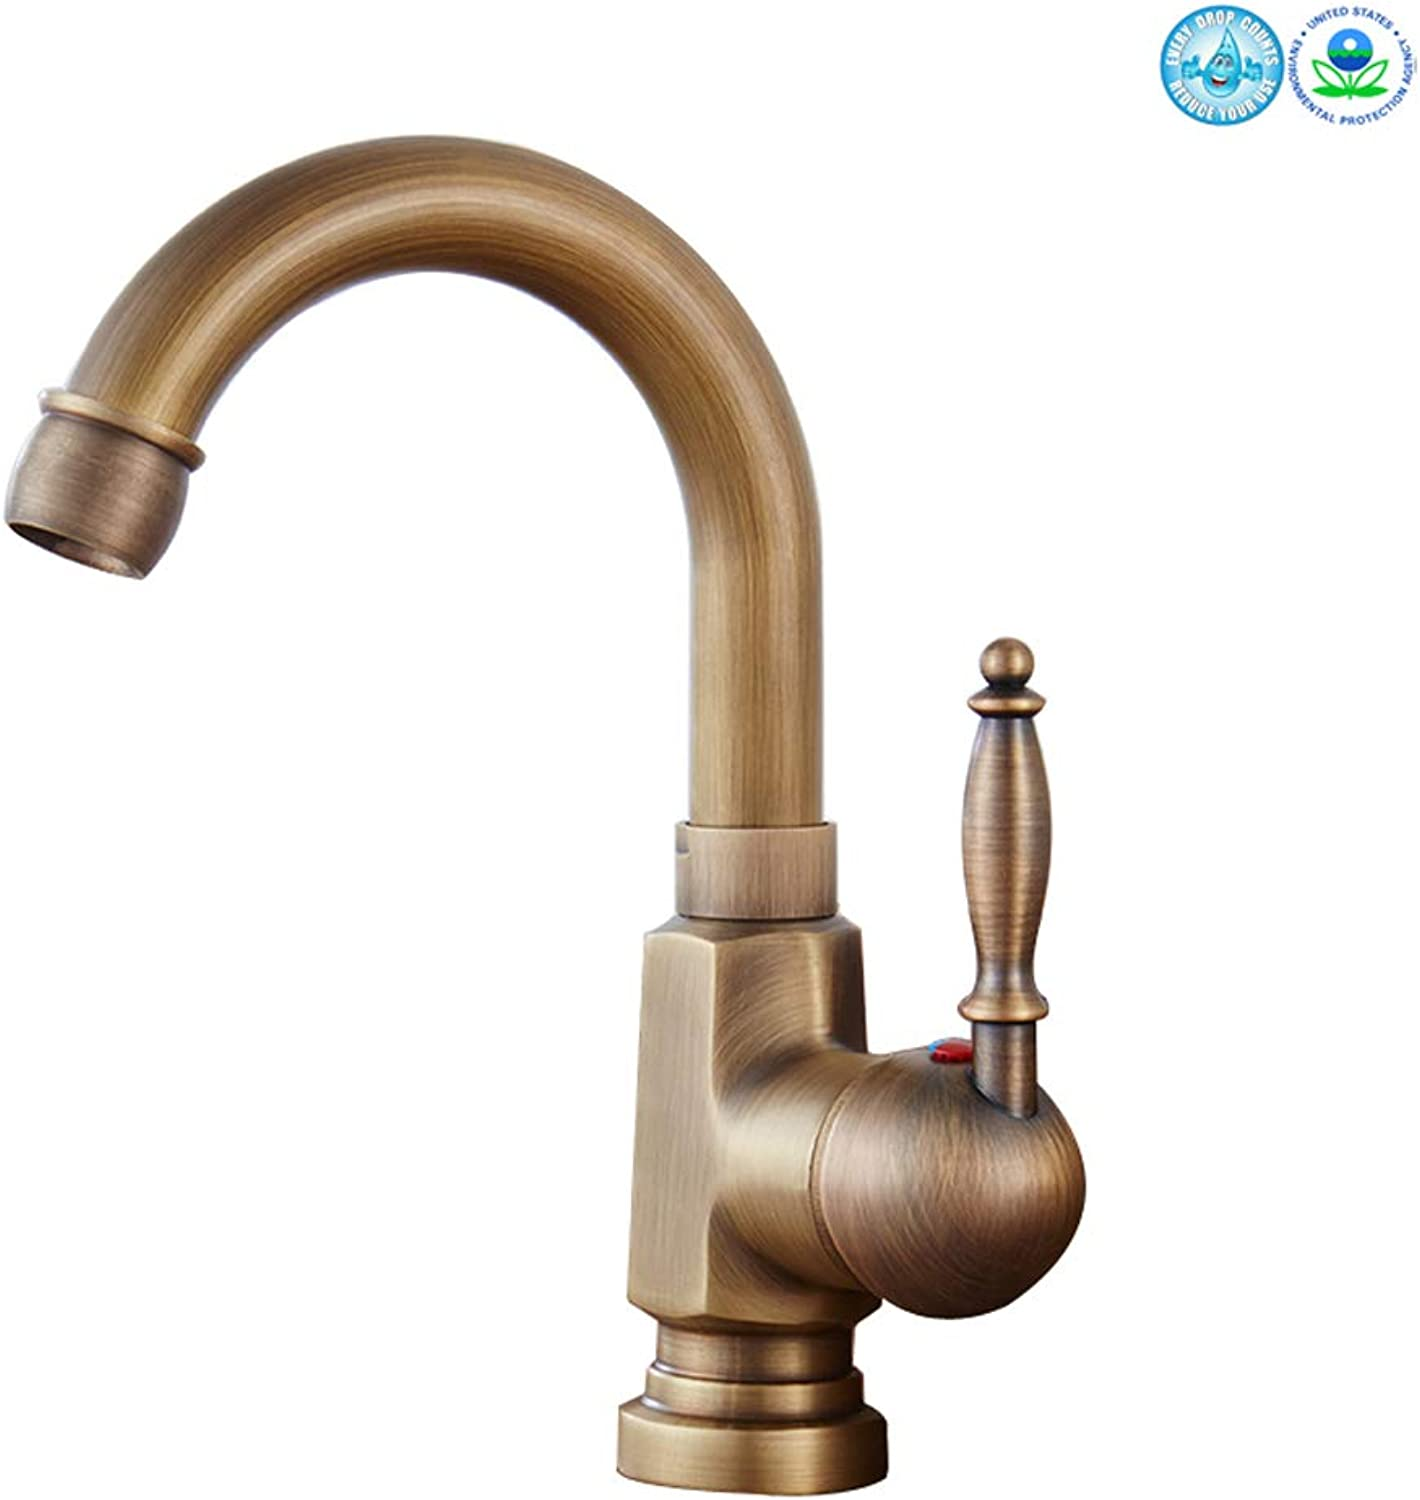 Tap Tap,Mixer Single Handle Bathroom Sink Water Faucet Taps Brushed Nickle Hot Cold Mixer